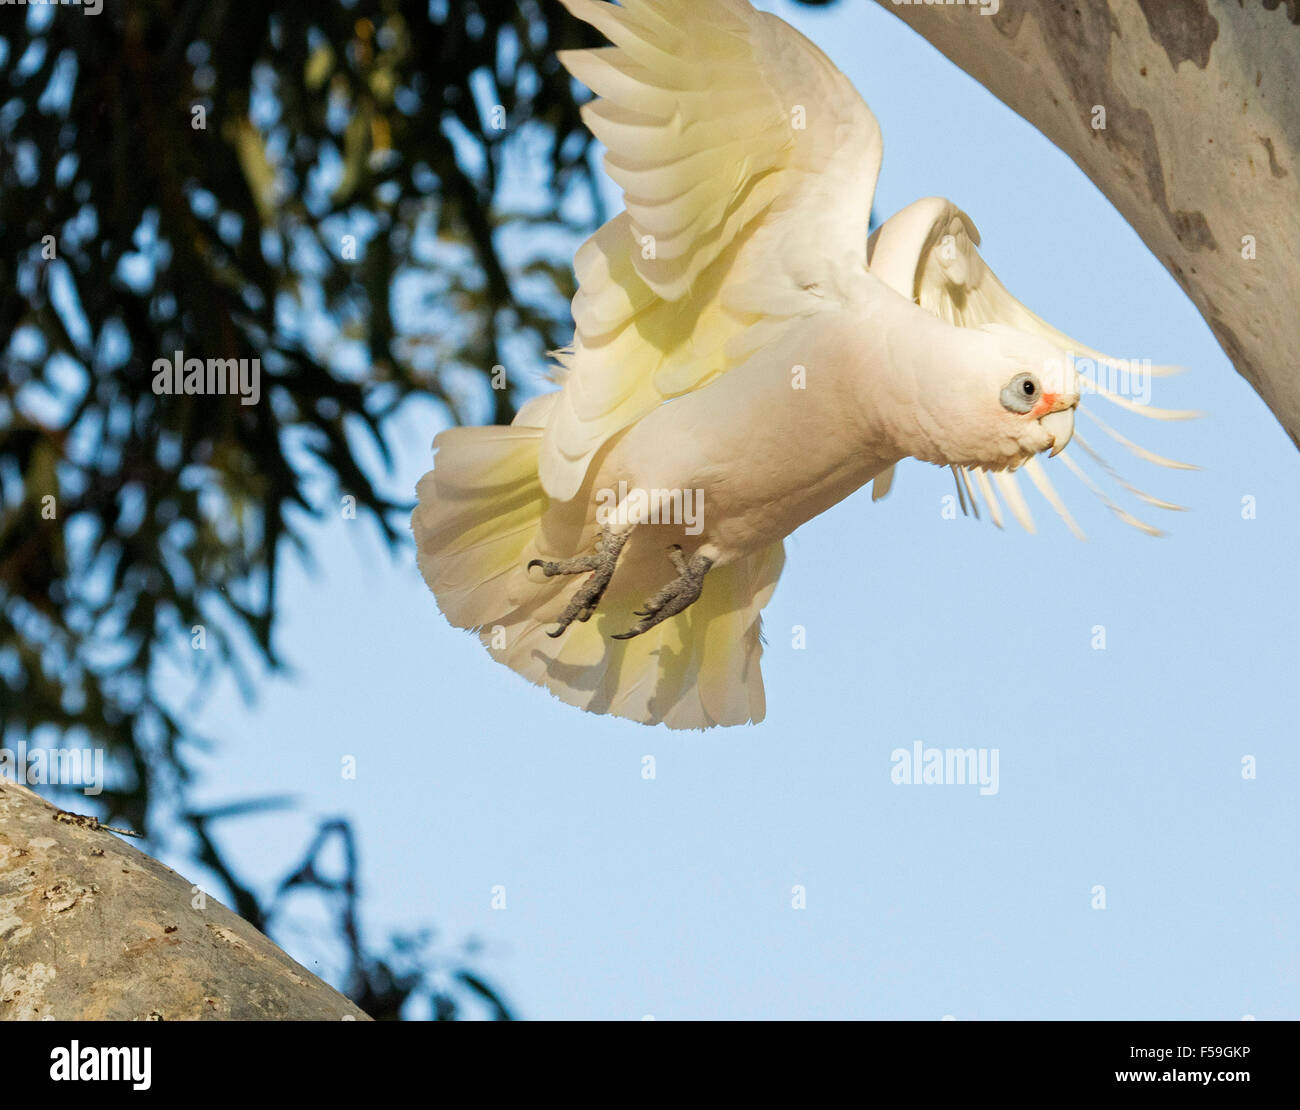 Little corella, Cacatua sanguinea, white cockatoo in flight with yellow feathers under wings, against blue sky in - Stock Image